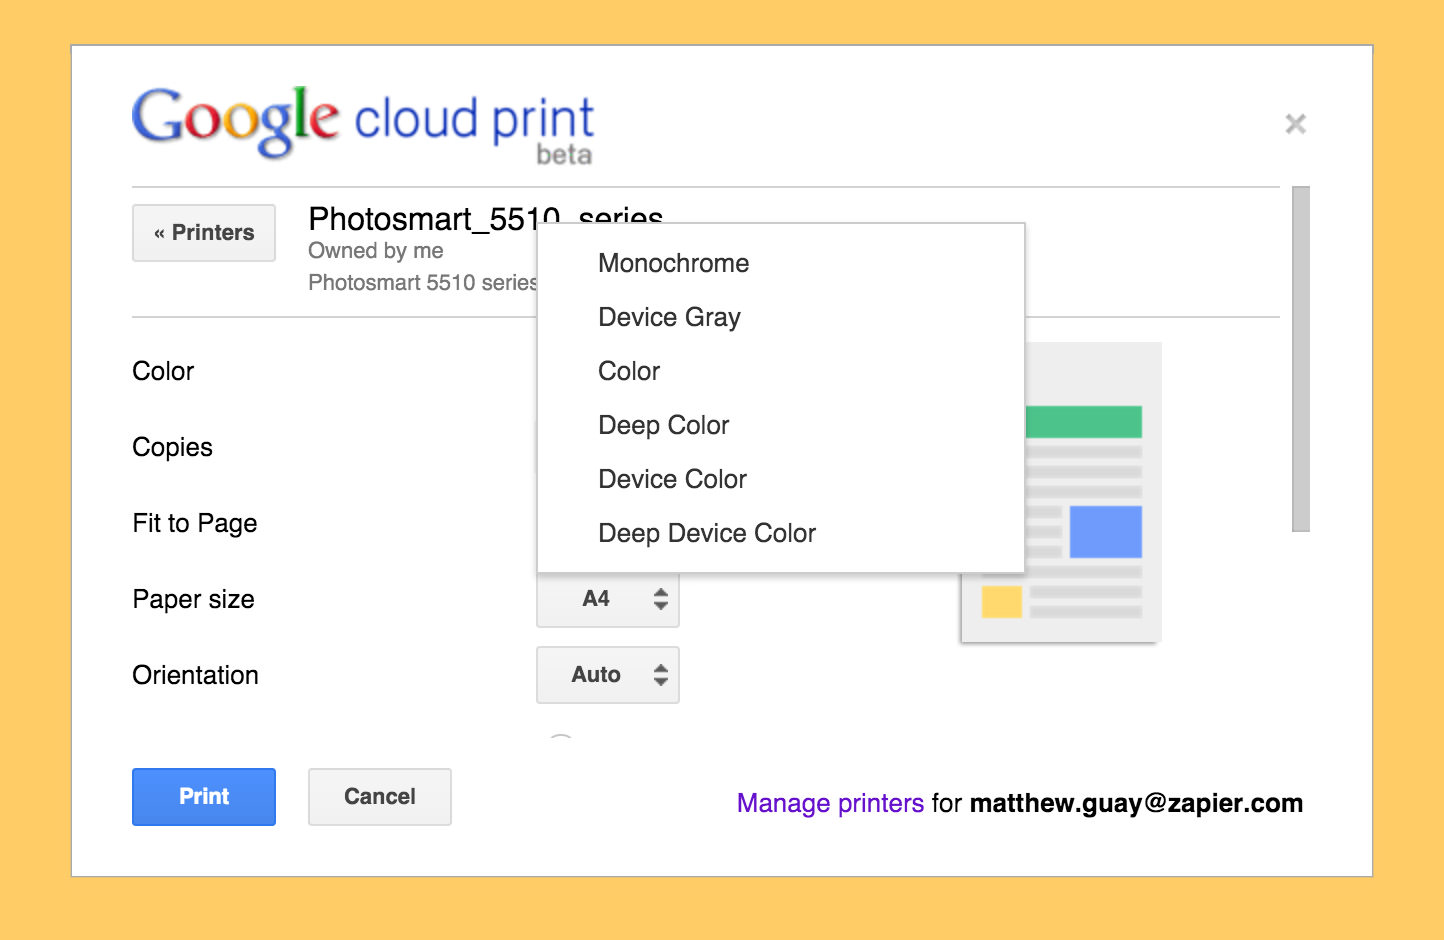 5 Remote Cloud Printing Services - Print From Smartphone And Browser